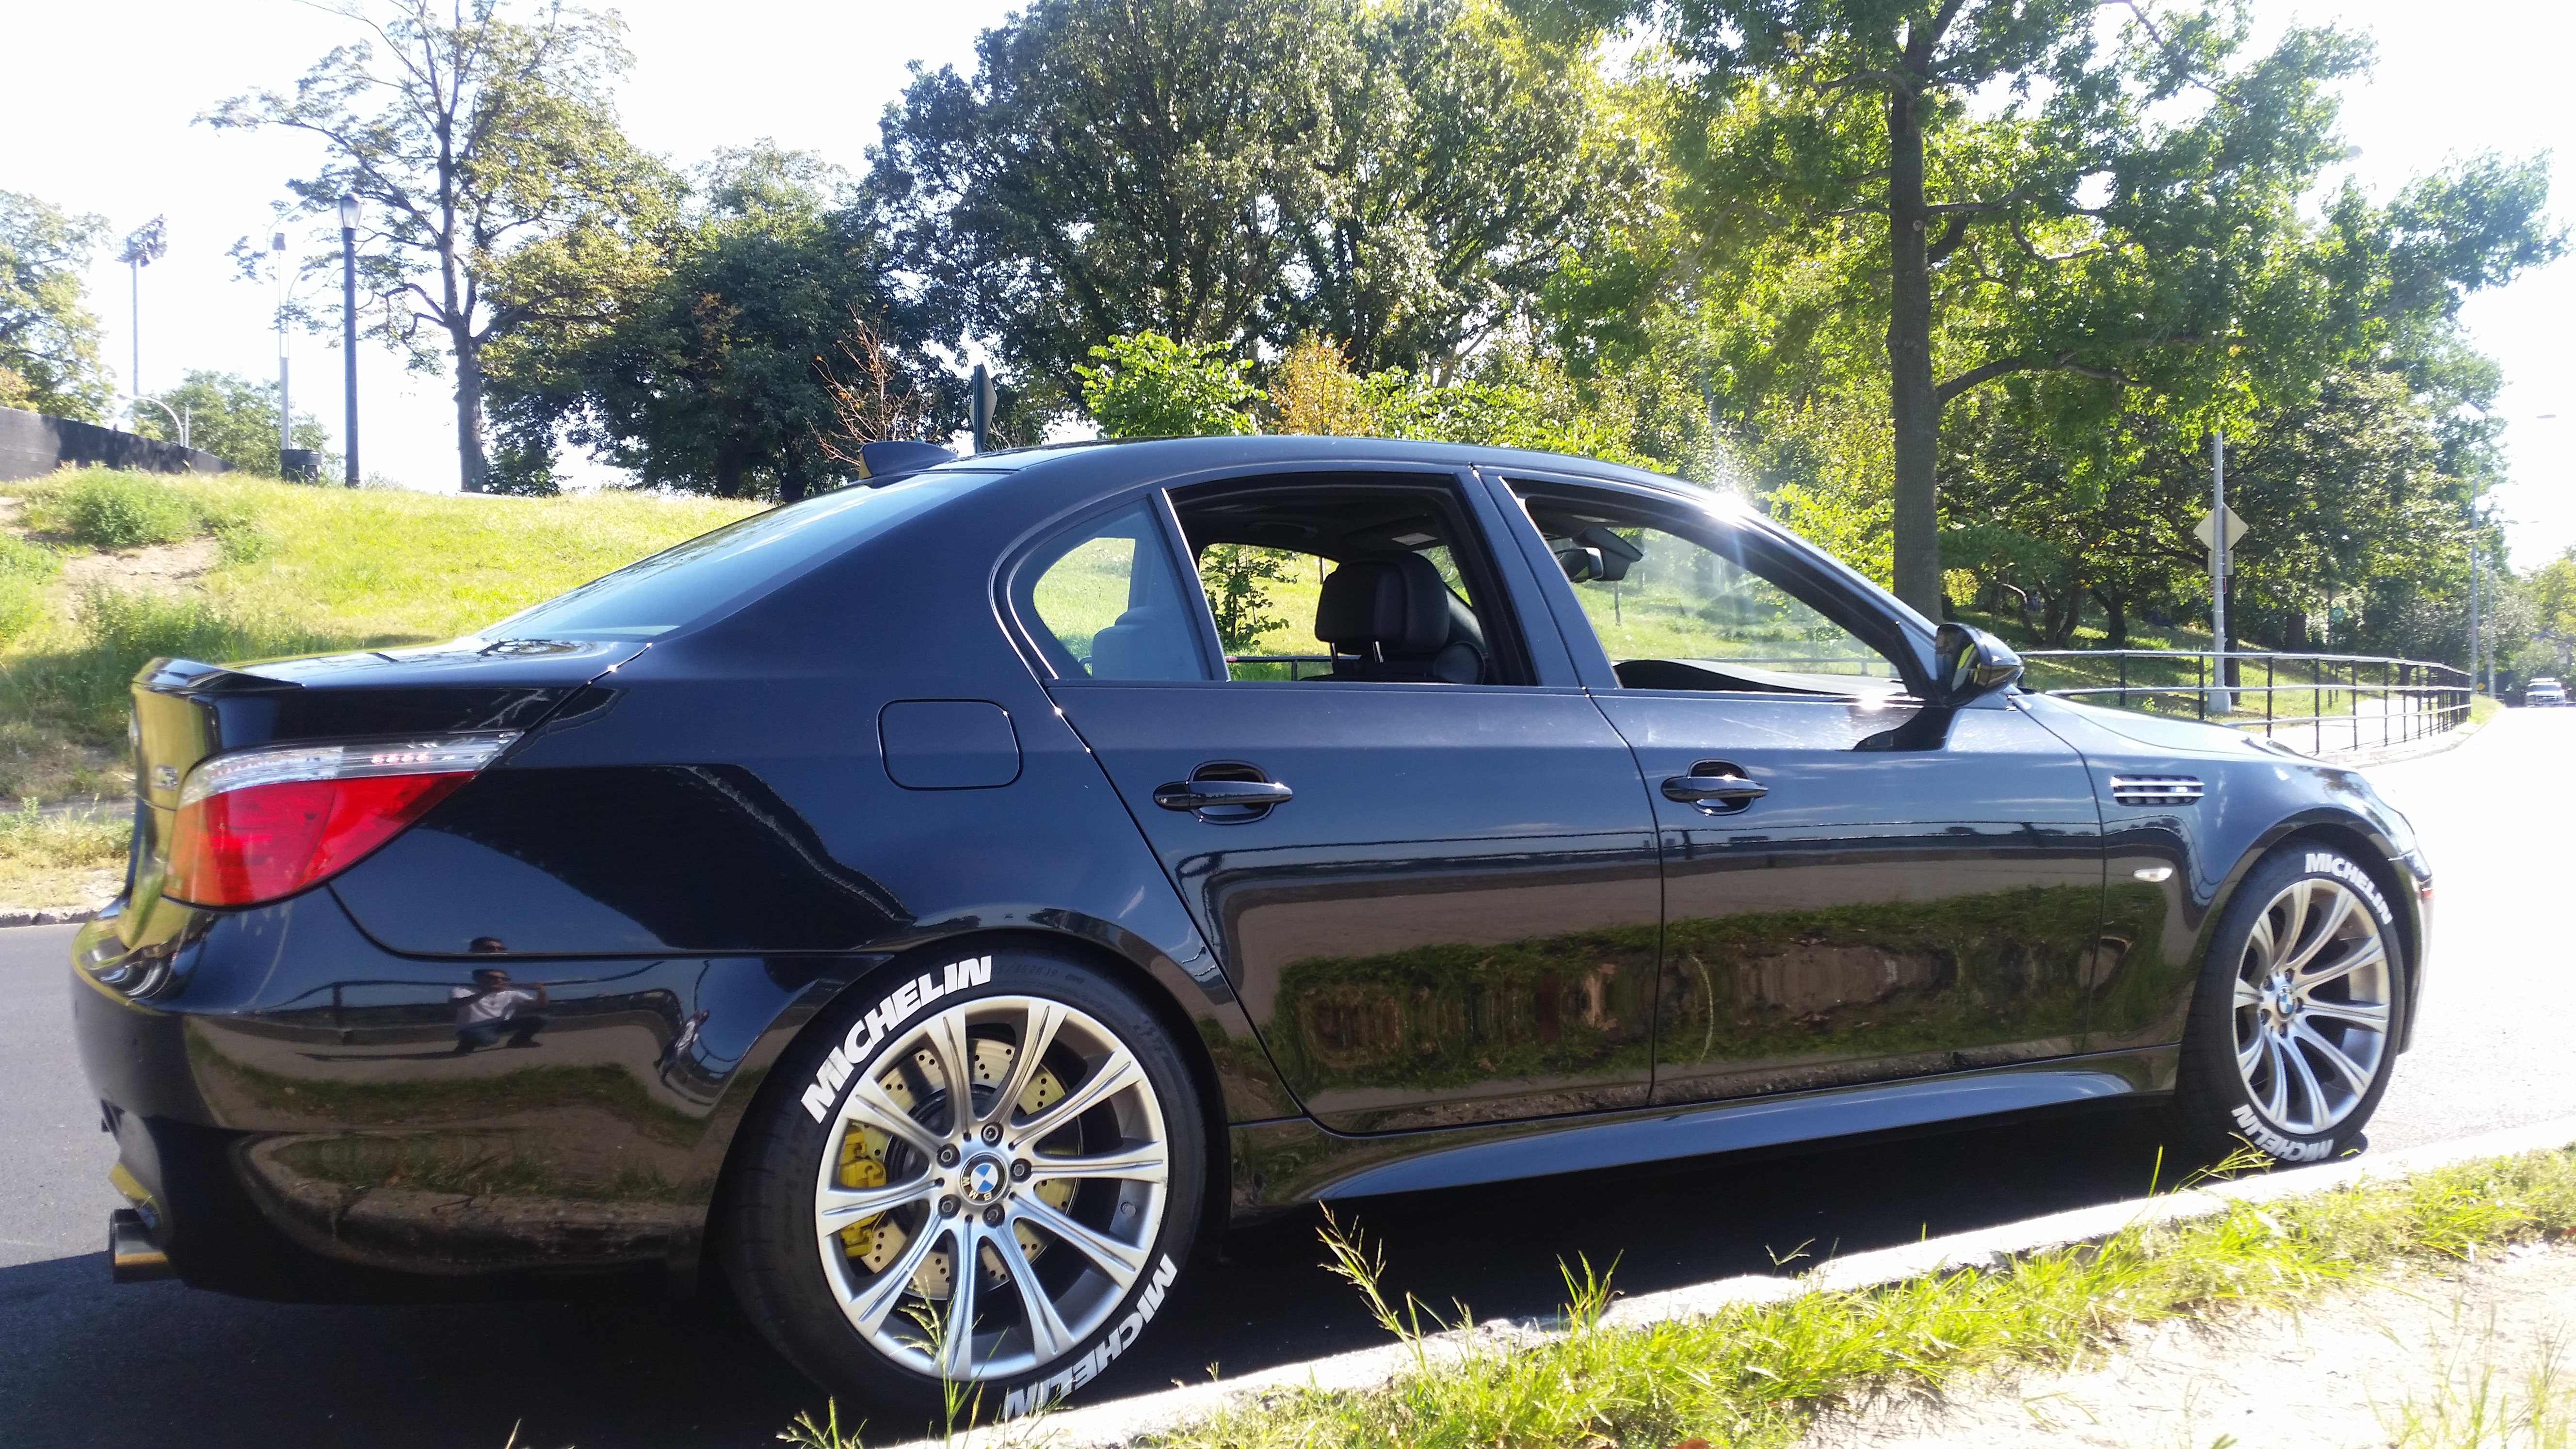 e60 m5 smg clutch slipping bmw m5 forum and m6 forums. Black Bedroom Furniture Sets. Home Design Ideas